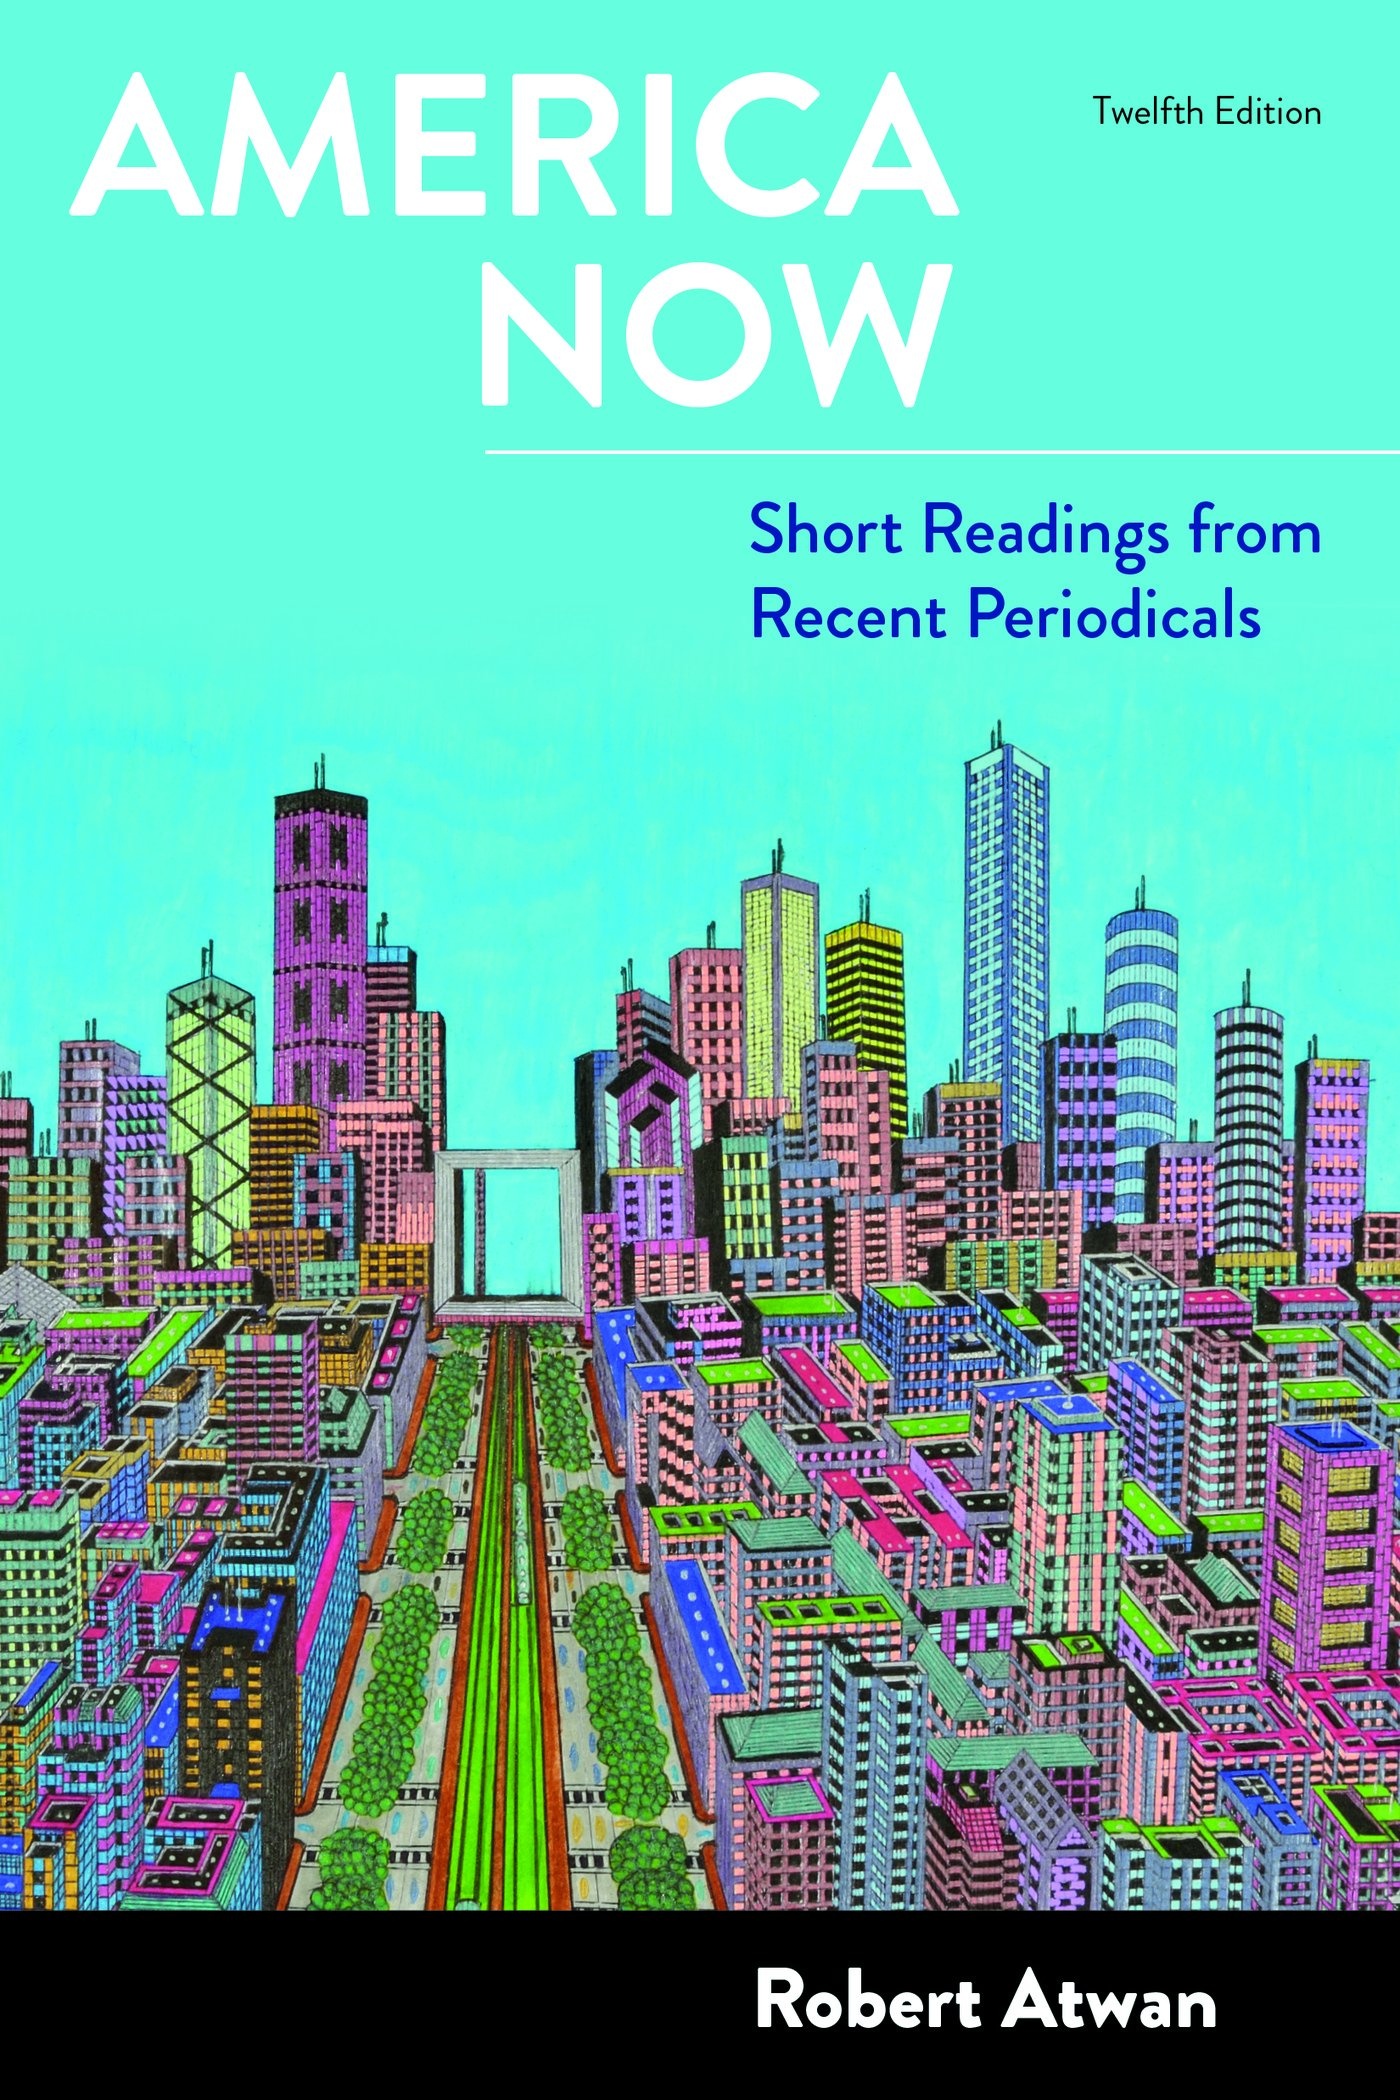 America Now: Short Readings from Recent Periodicals by Bedford/St. Martin's